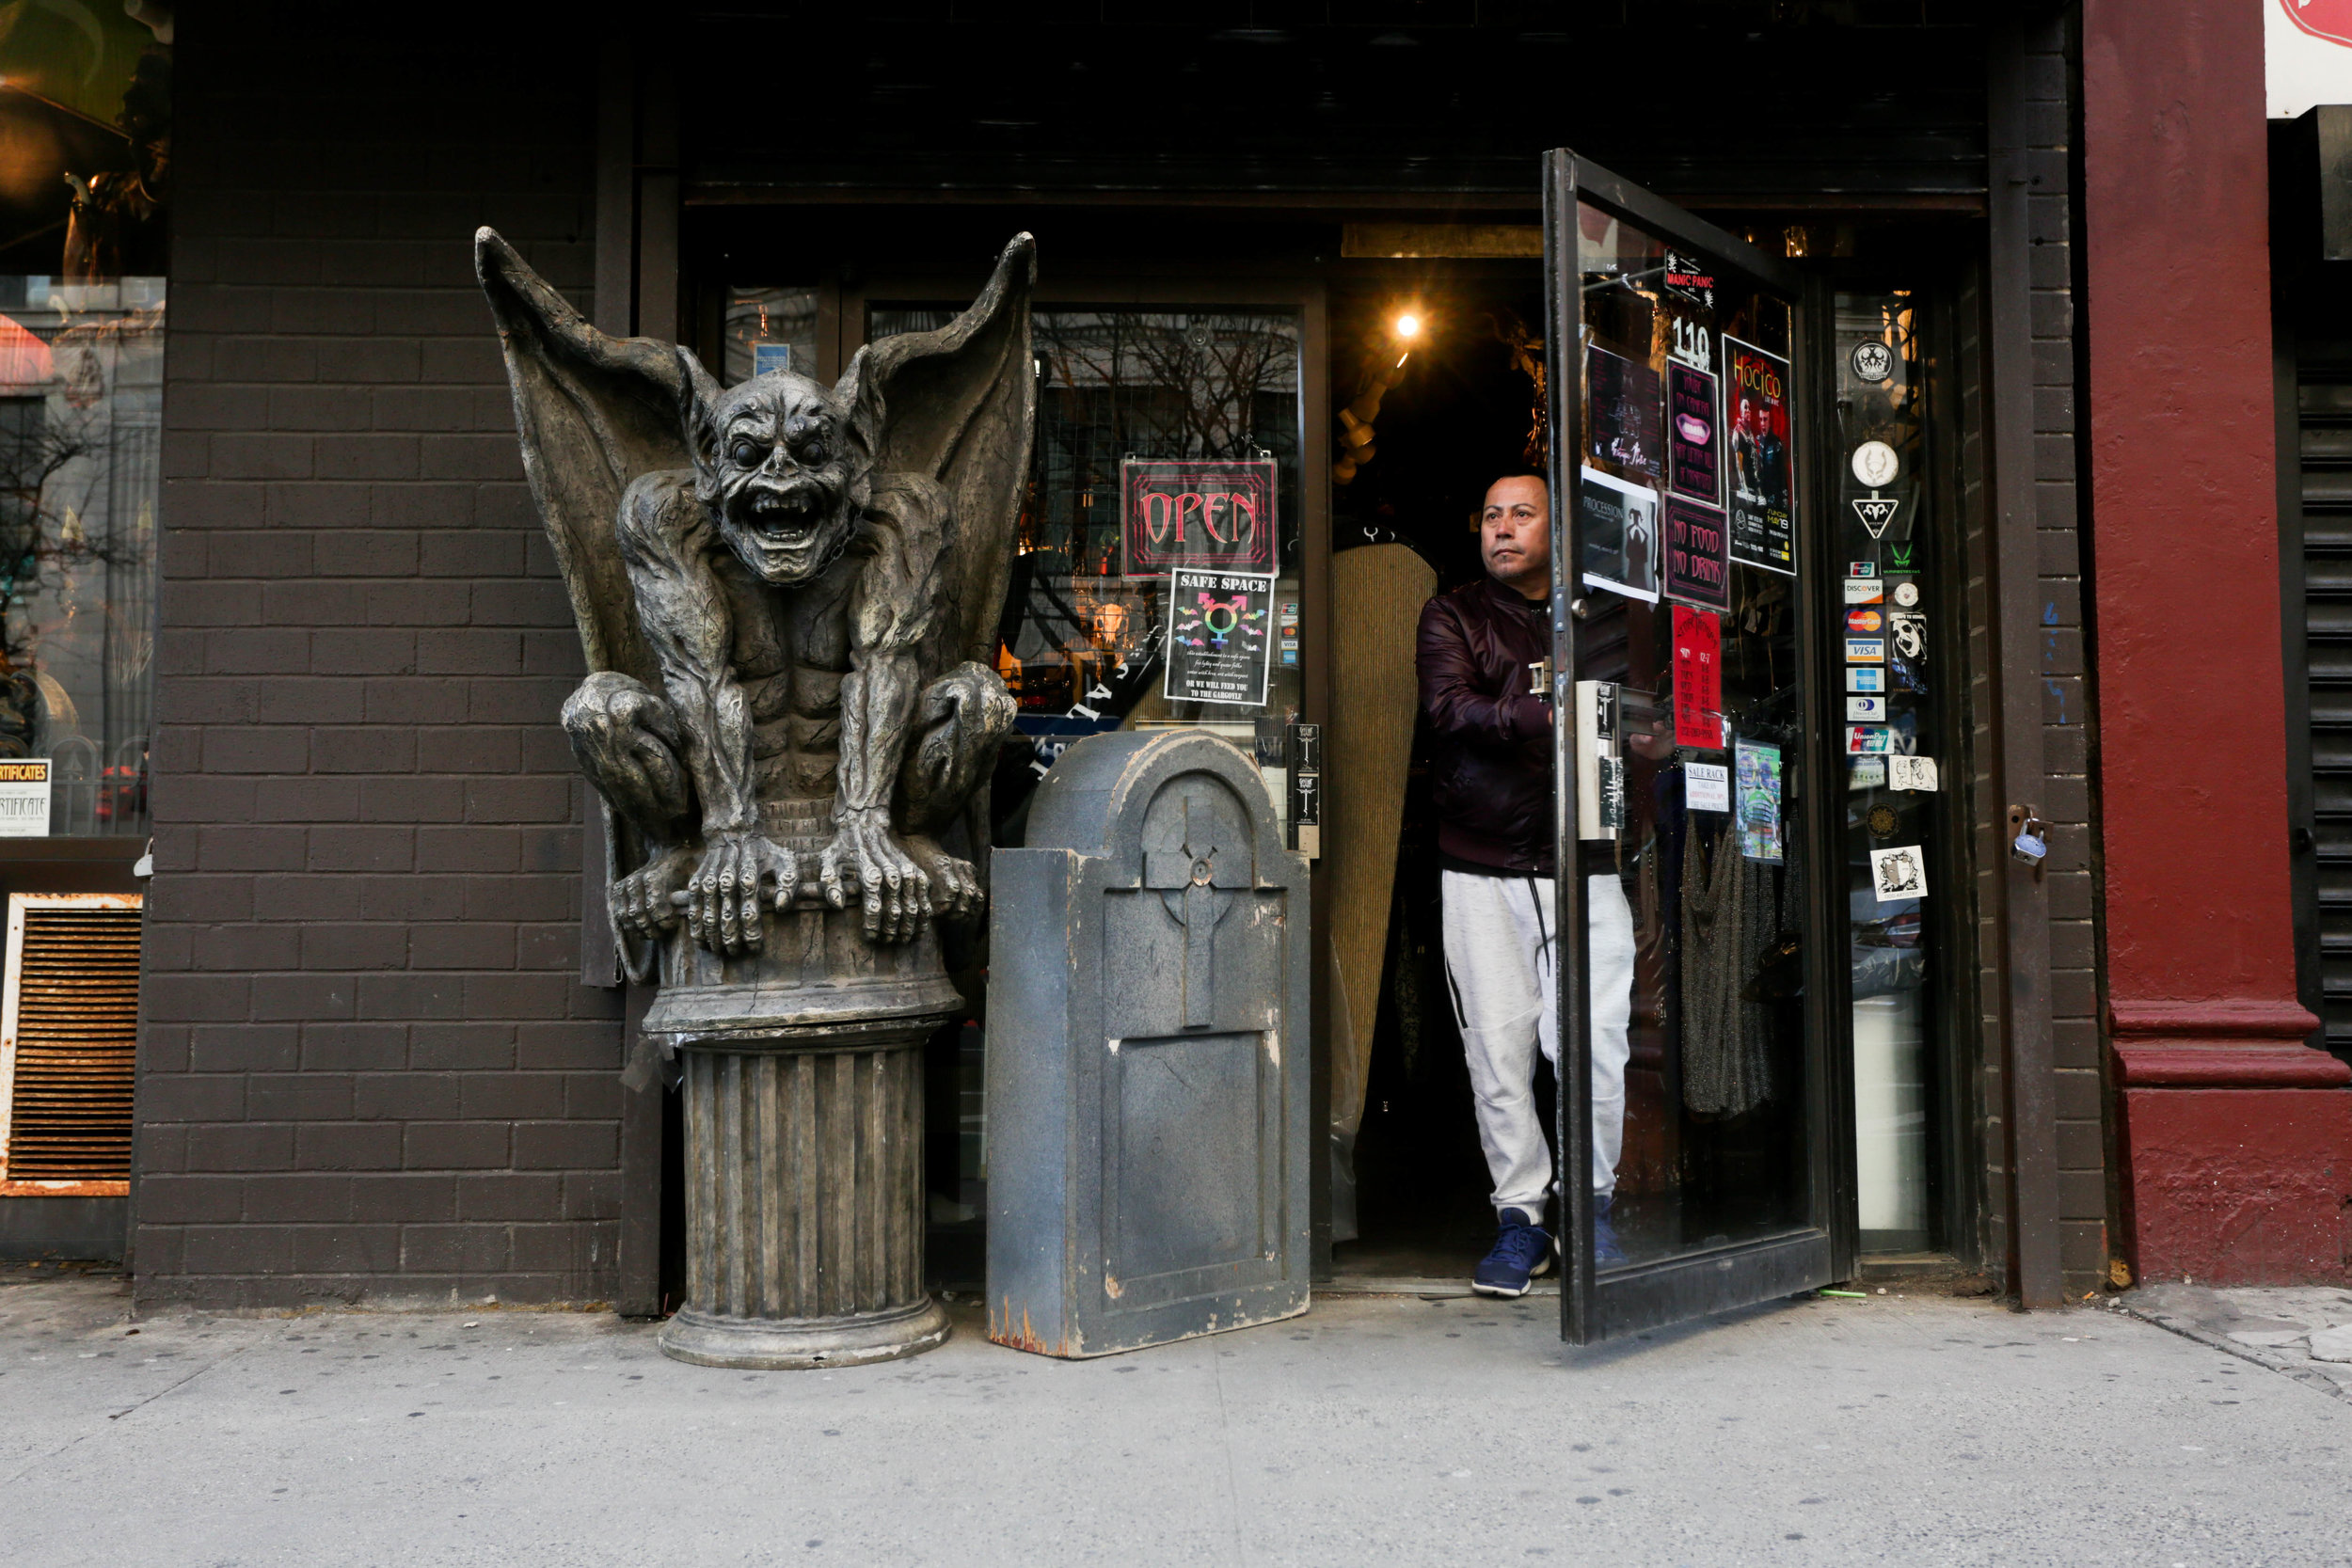 Goth Renaissance is New York's premier one stop shop for all goth and showtime needs. In New York on Saturday, March 31, 2019. || Photo credit to Wes Parnell for EST.